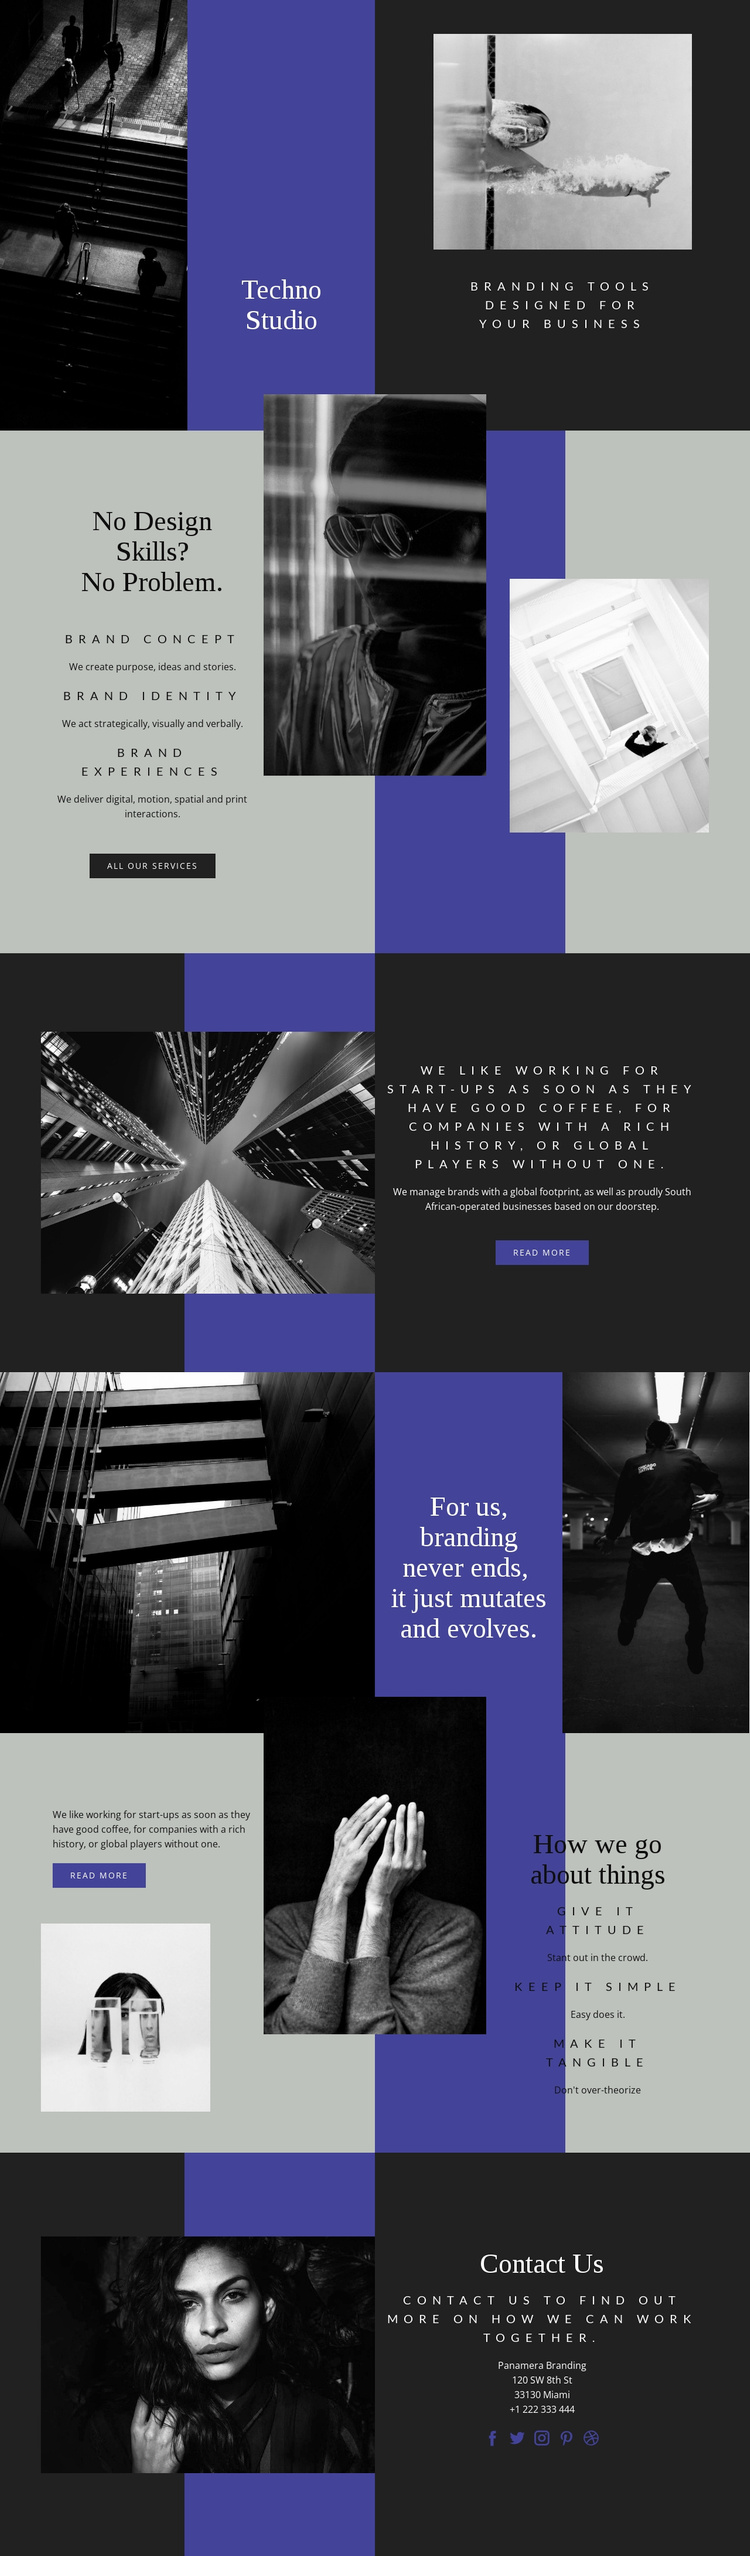 Techno skills in business Website Template